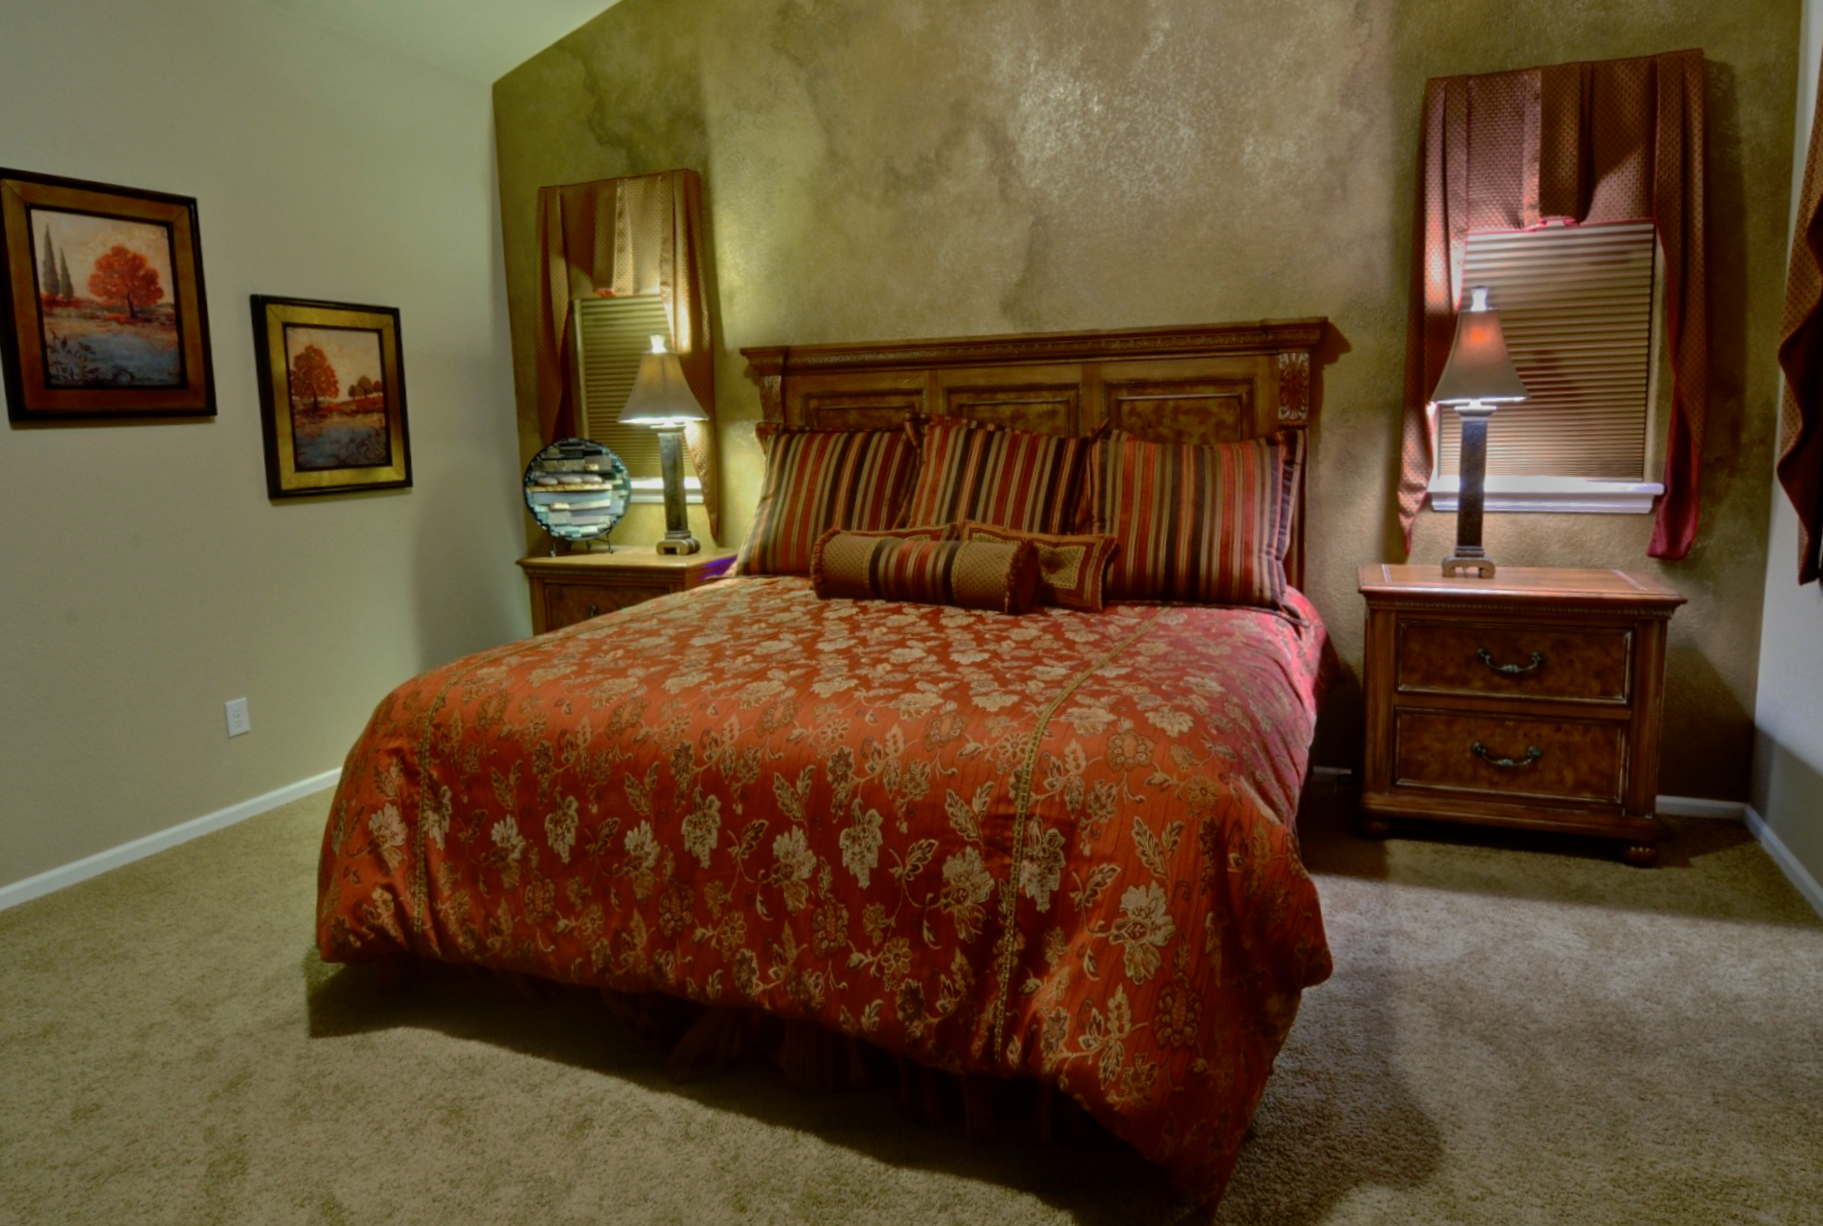 Bedroom Welcome To Colorado Blinds Amp Design The Leading